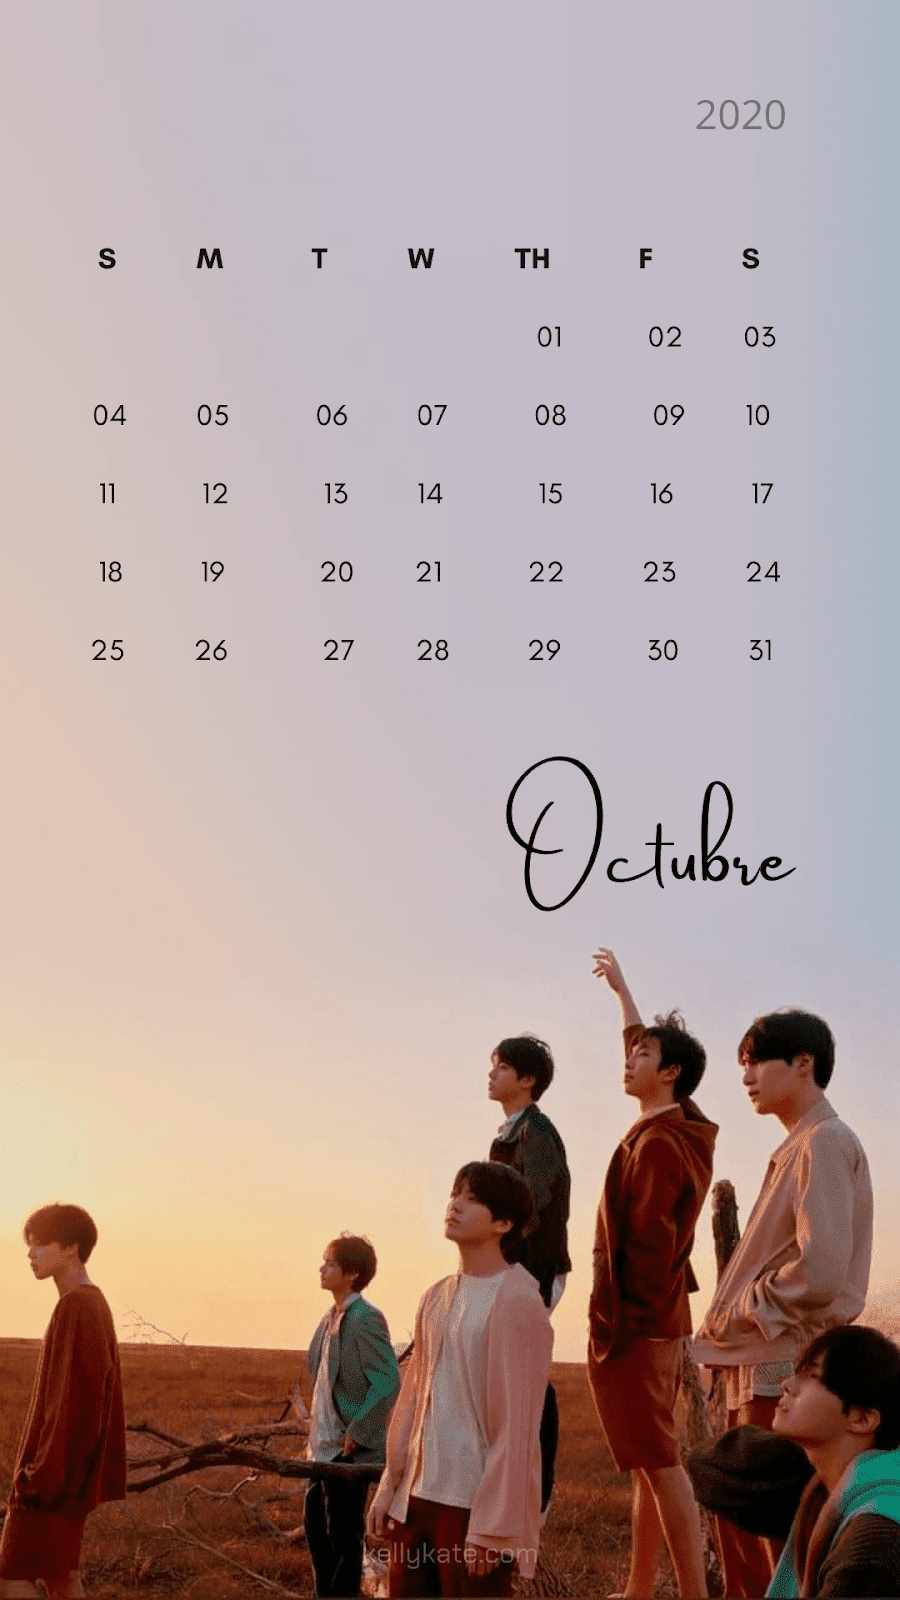 #calendariobts2020 #walpaperbts